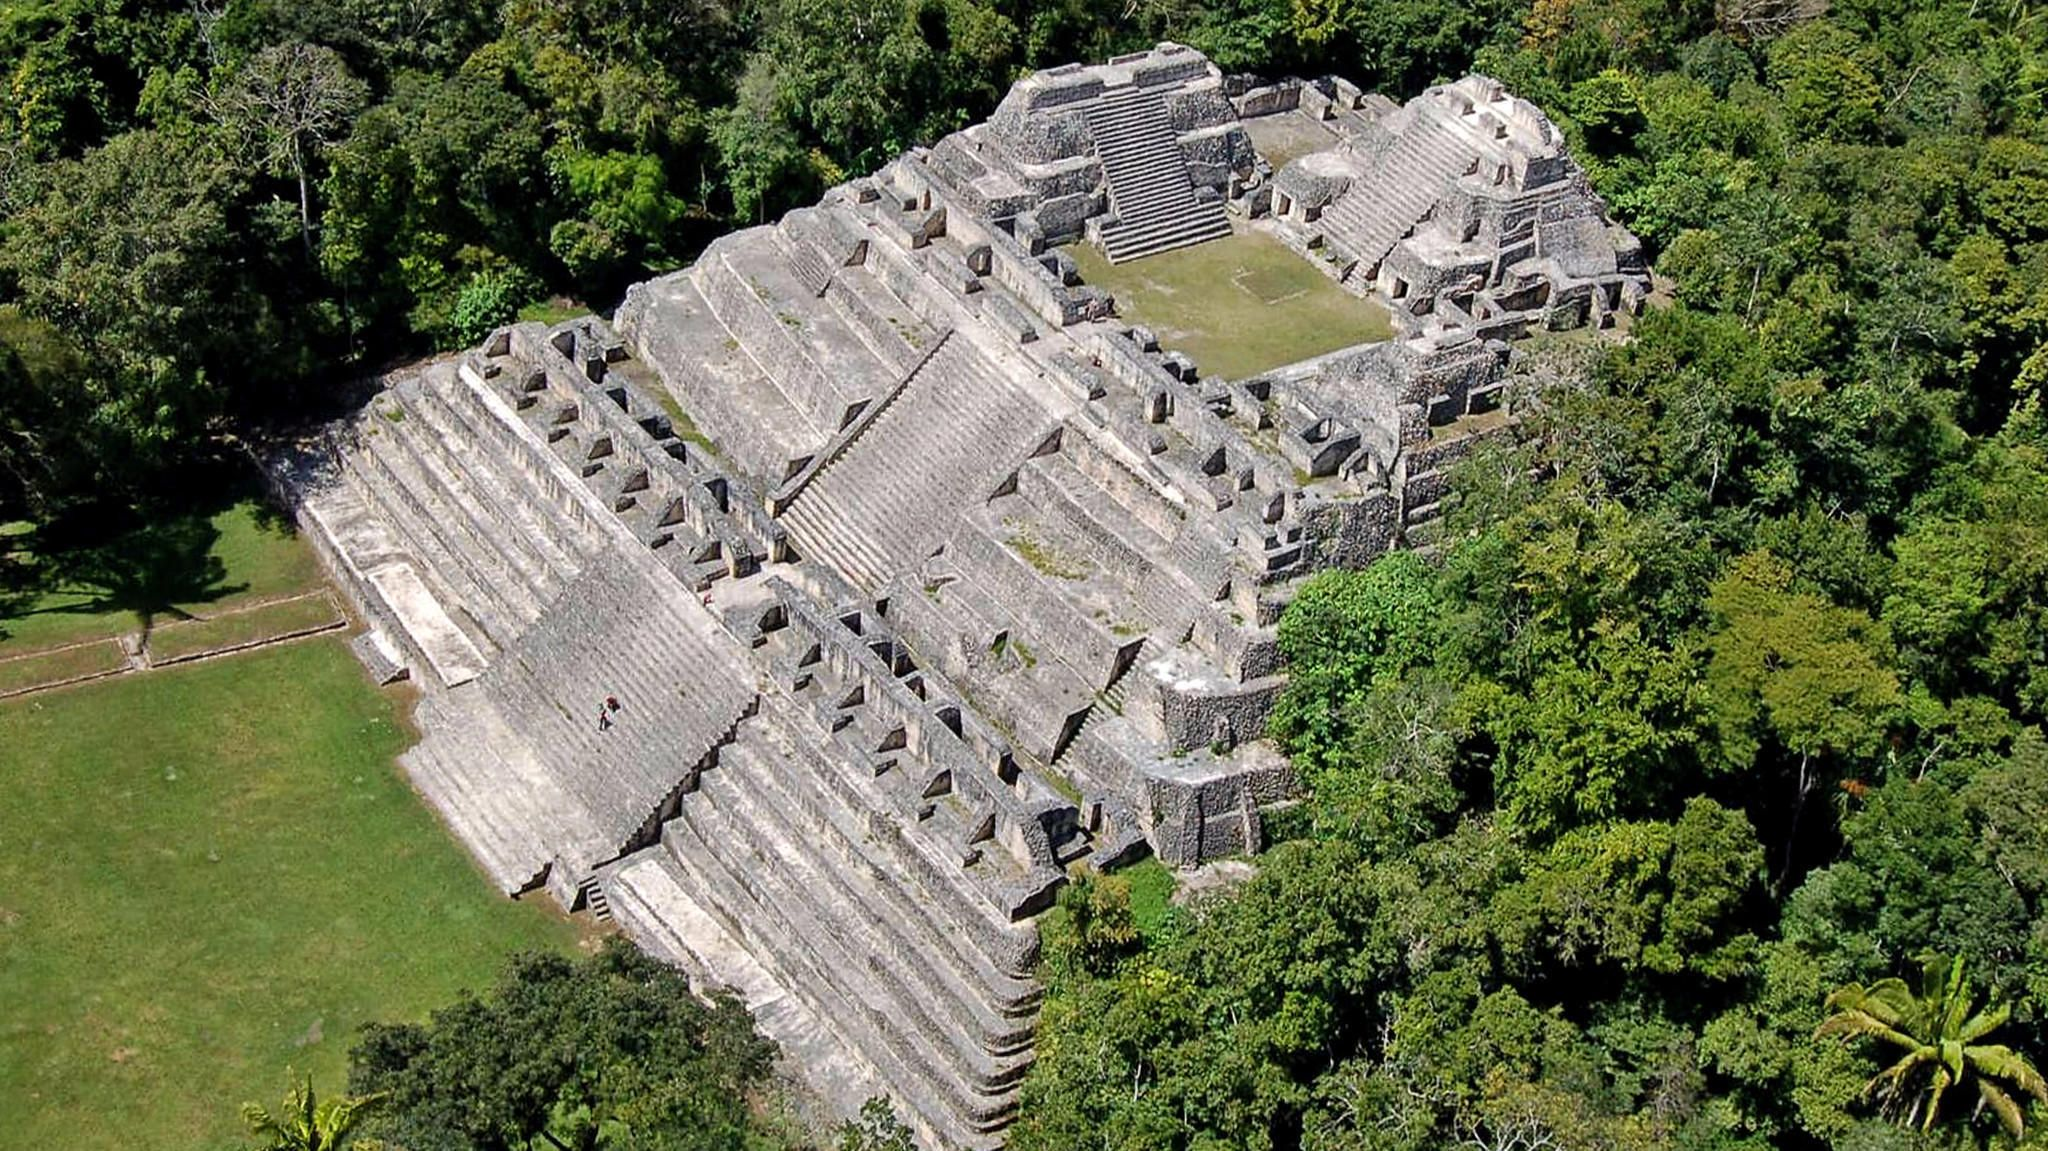 That wasn t a mayan lost city just another example of the culture of hype